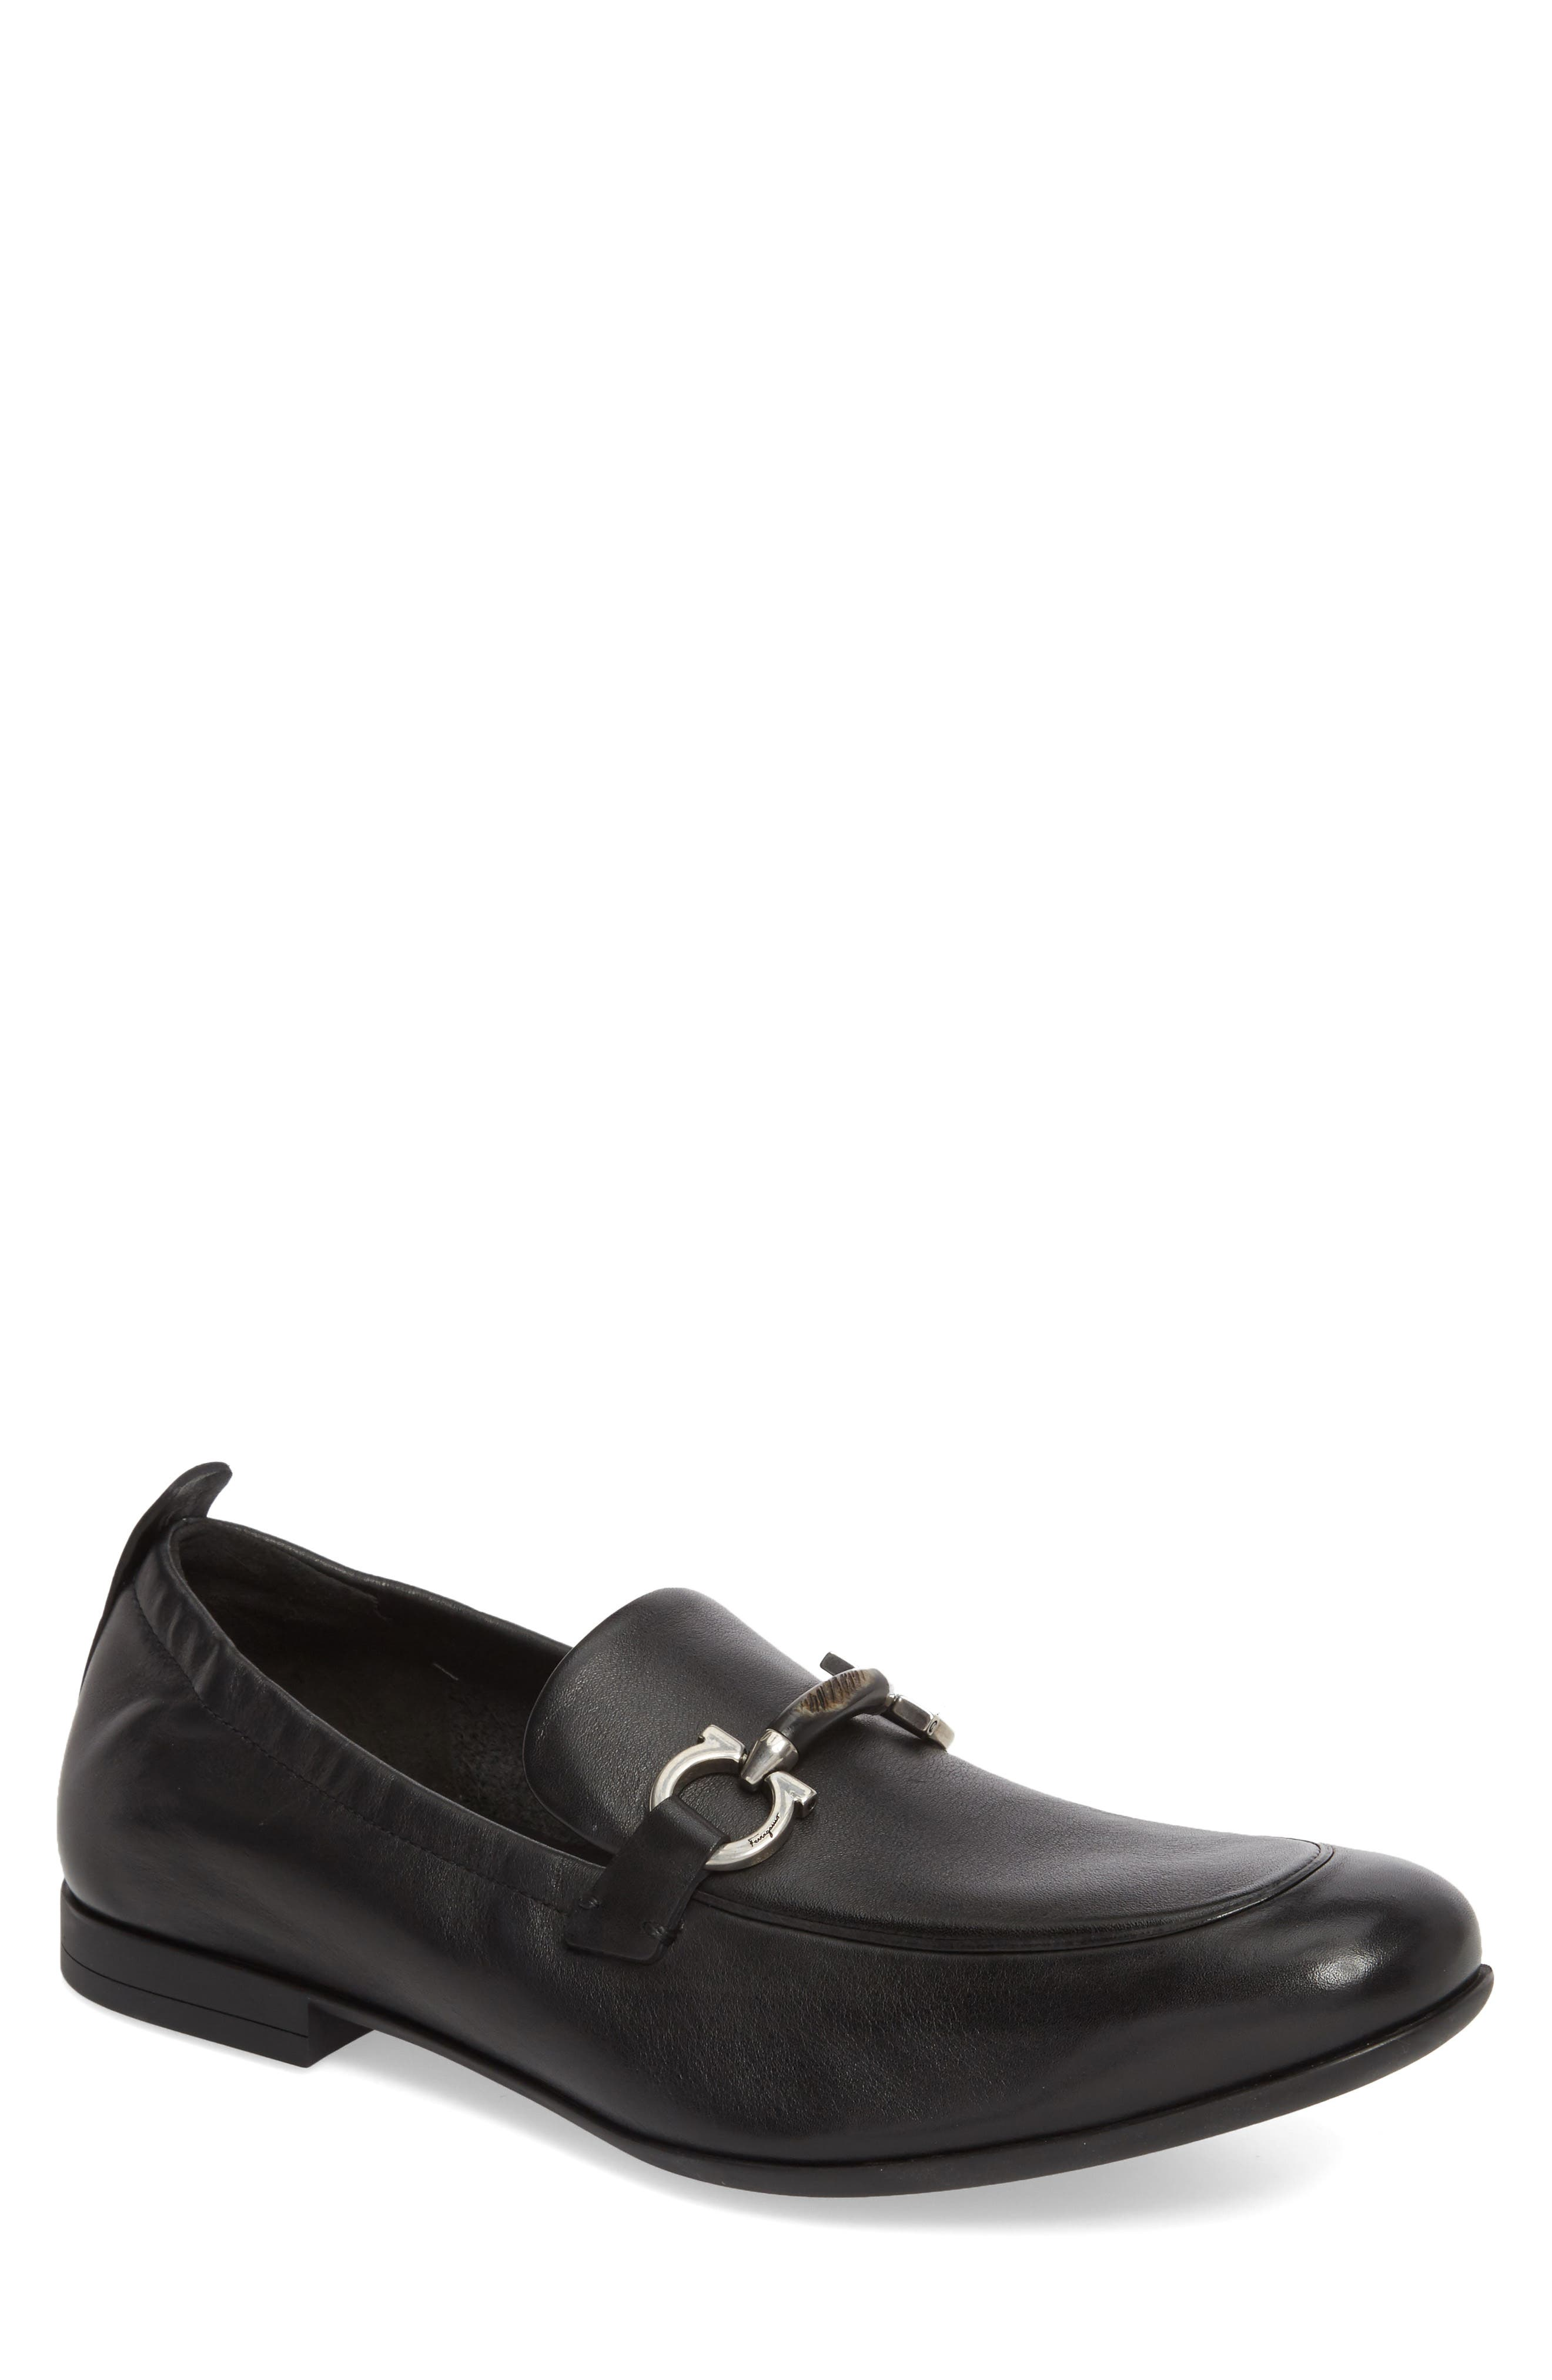 Celso Bit Loafer,                         Main,                         color, Nero